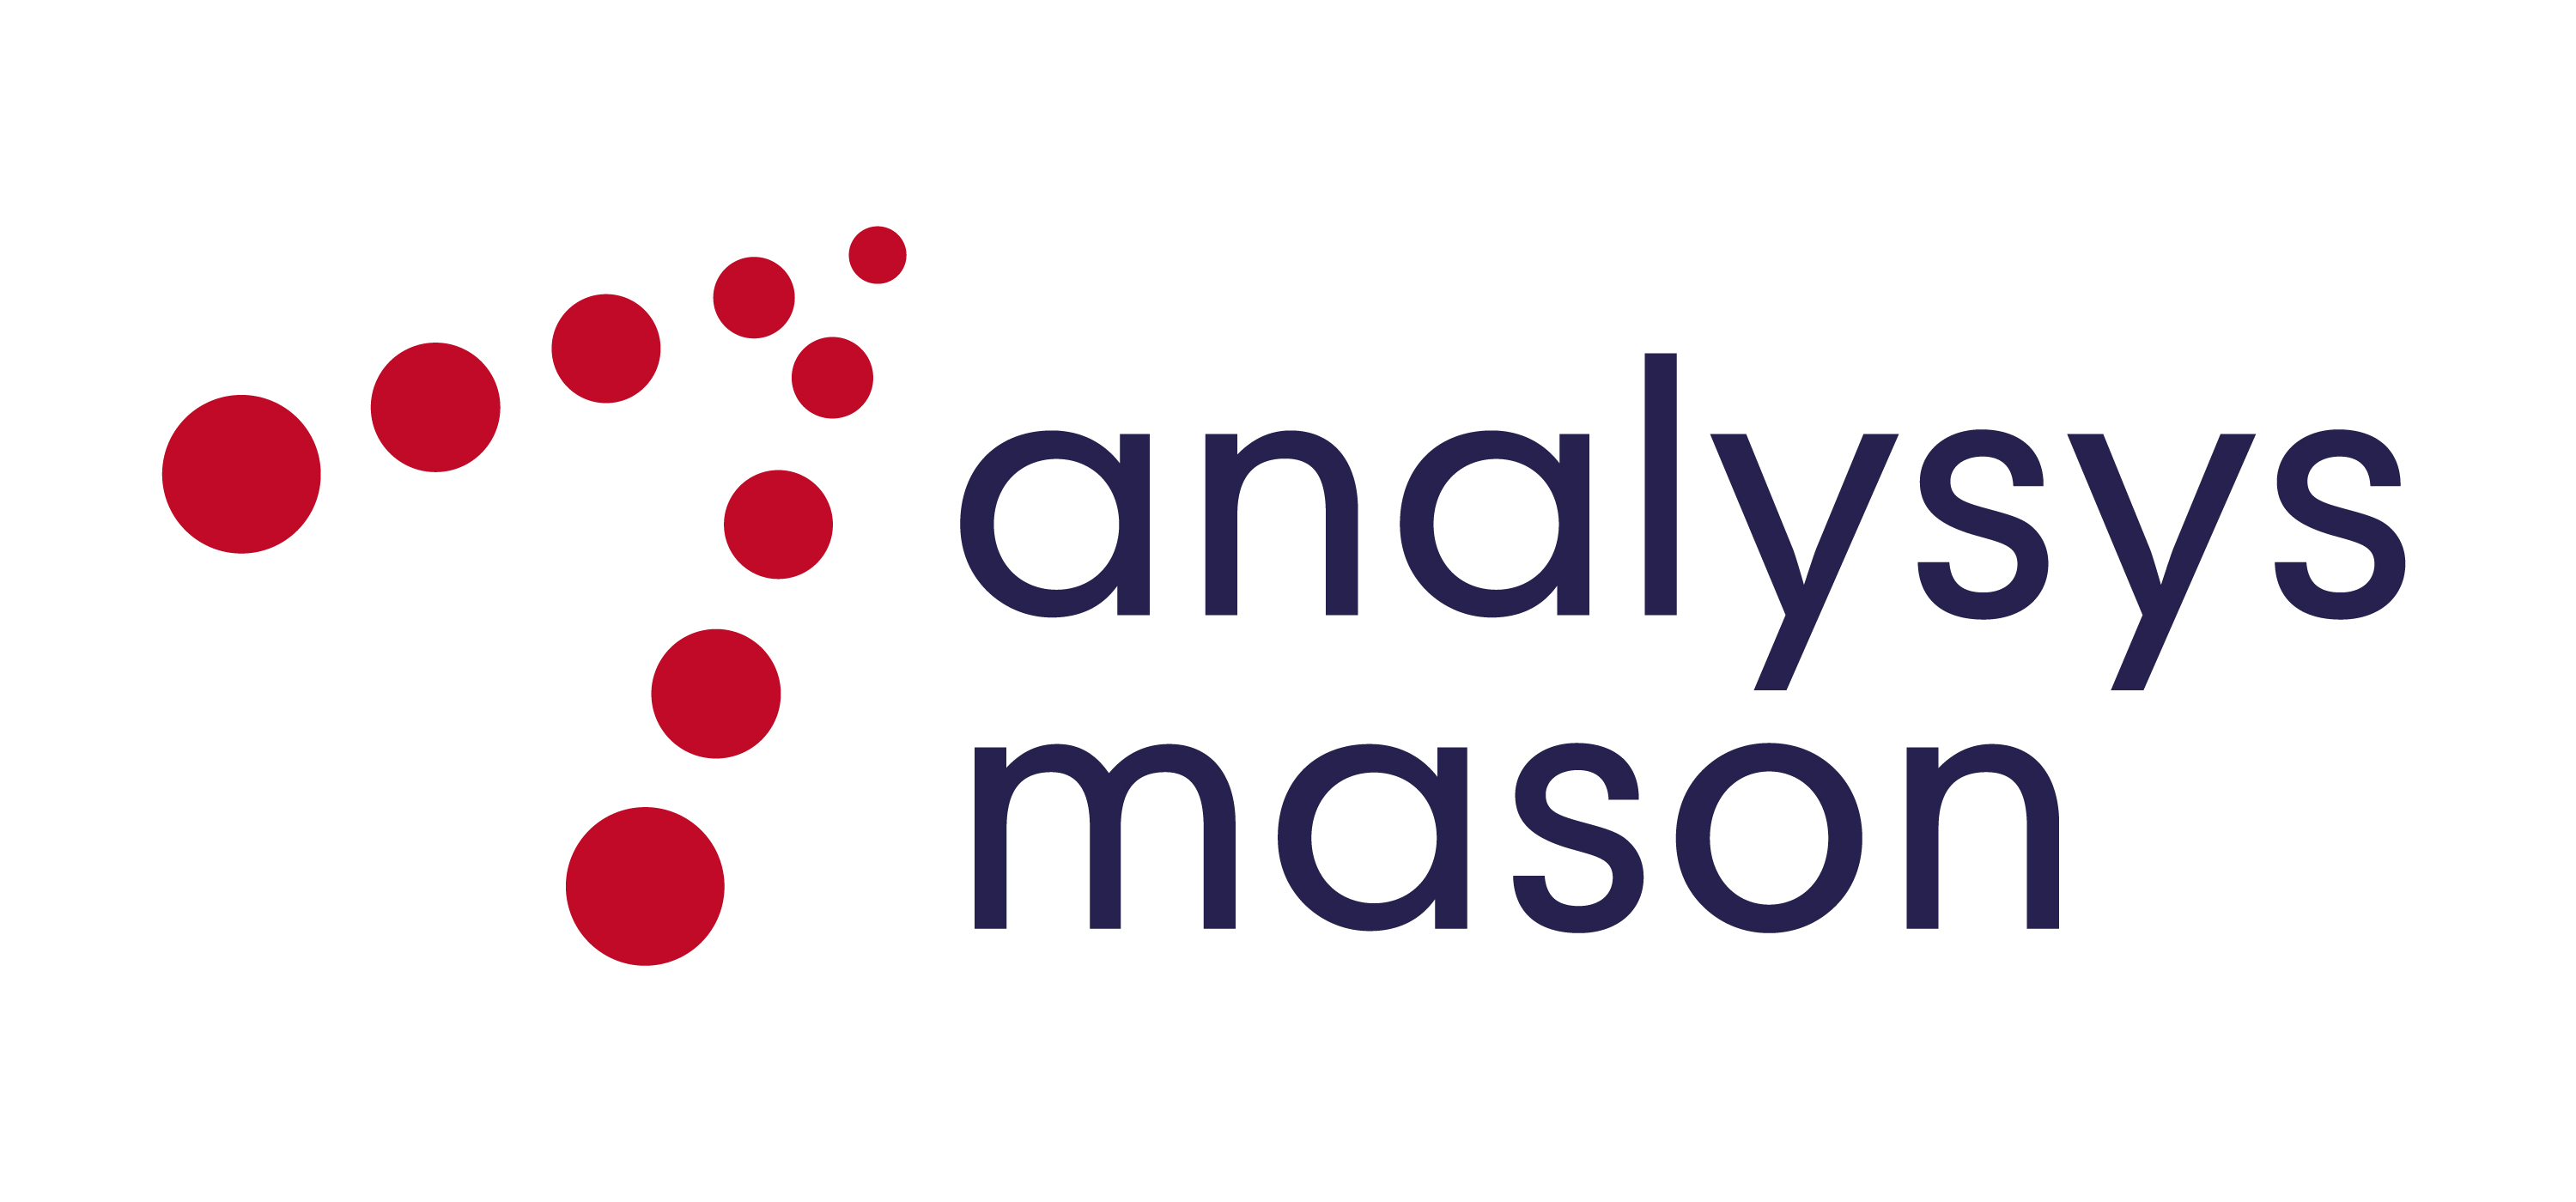 Analysys-mason-logo-incognito-software